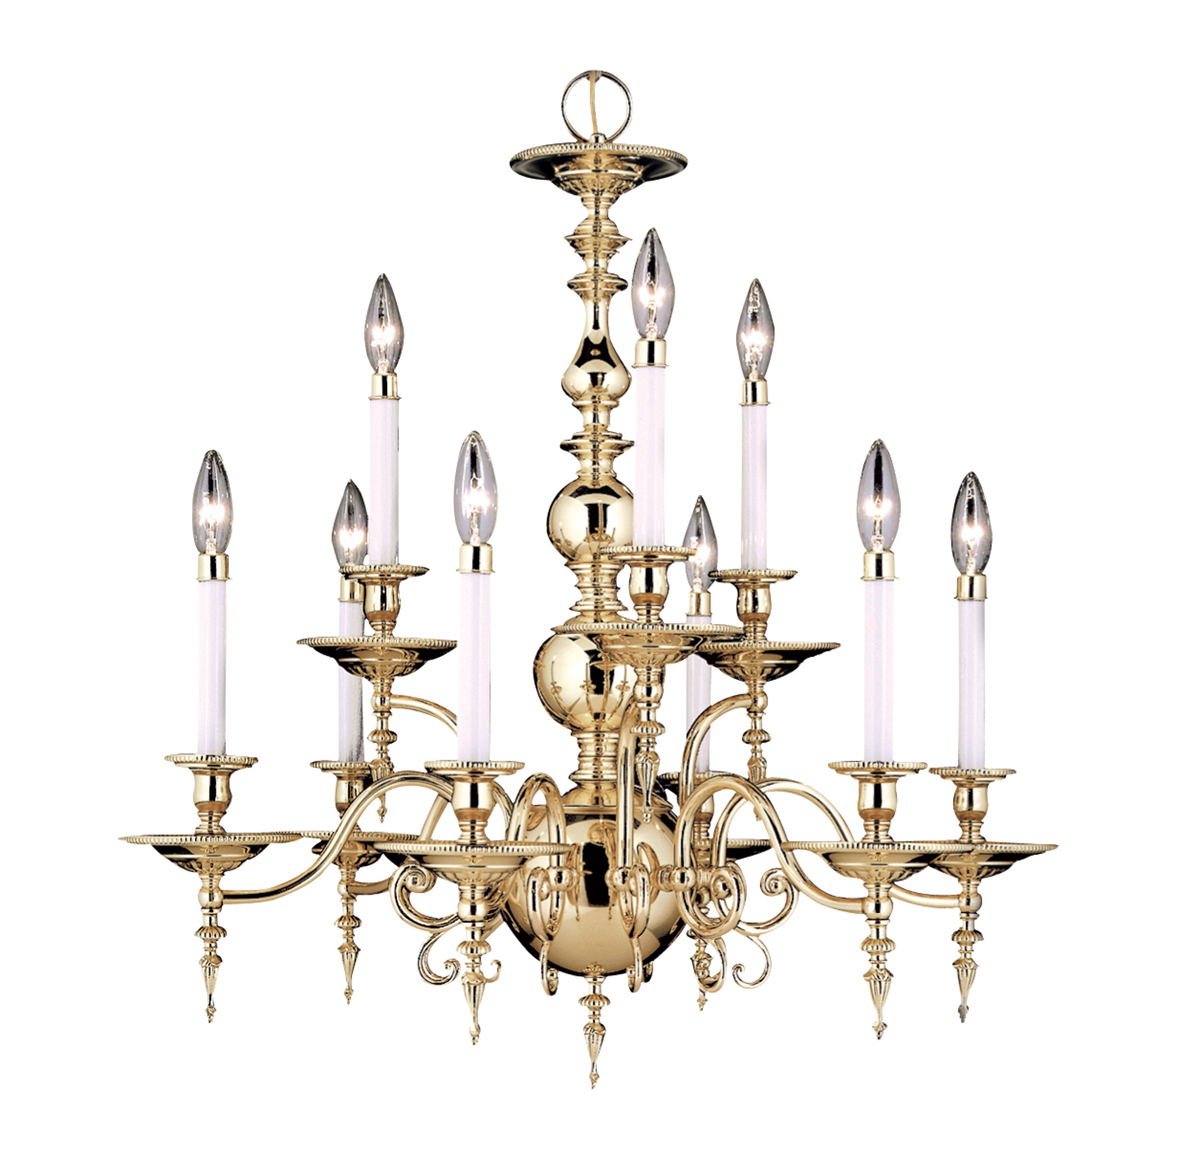 Framburg Lighting (7449) 9-Light Kensington Dining Chandelier